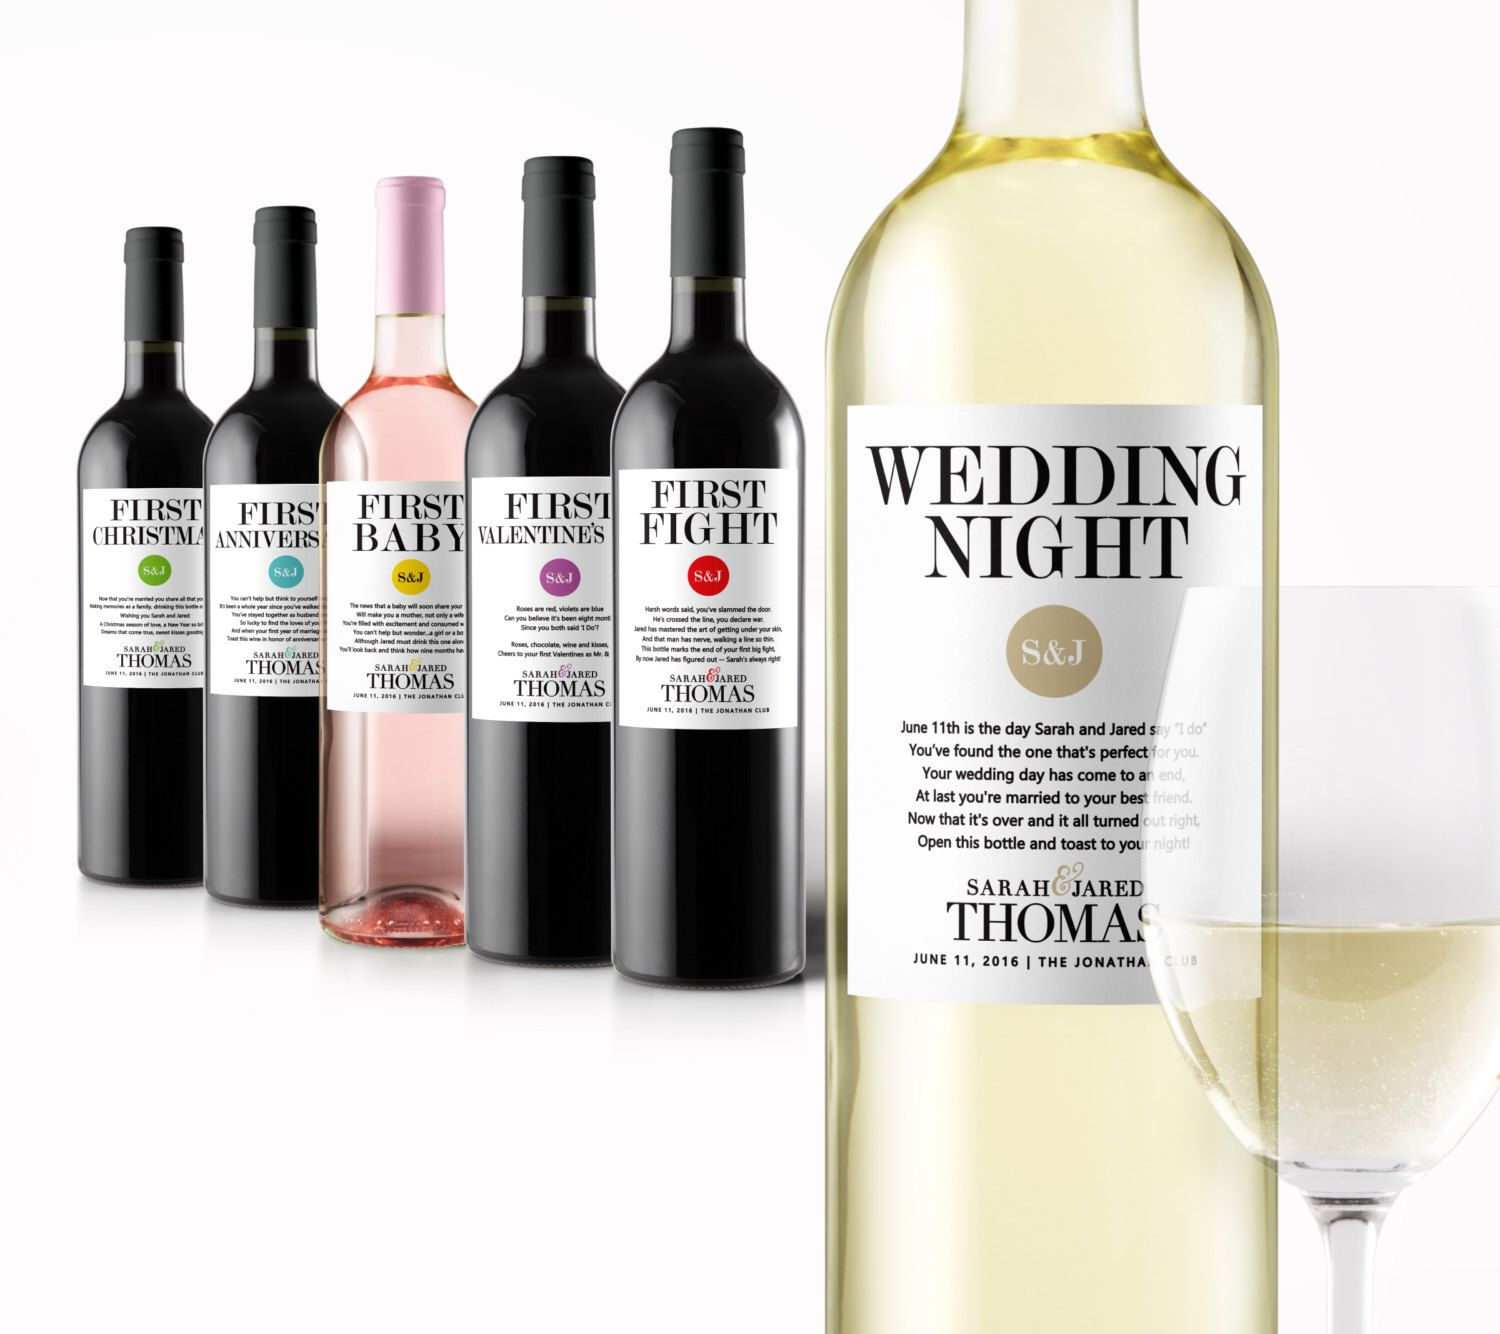 Wedding Milestone Wine Labels Fun Gifts Engagement Gift Celebrating Marriage Firsts